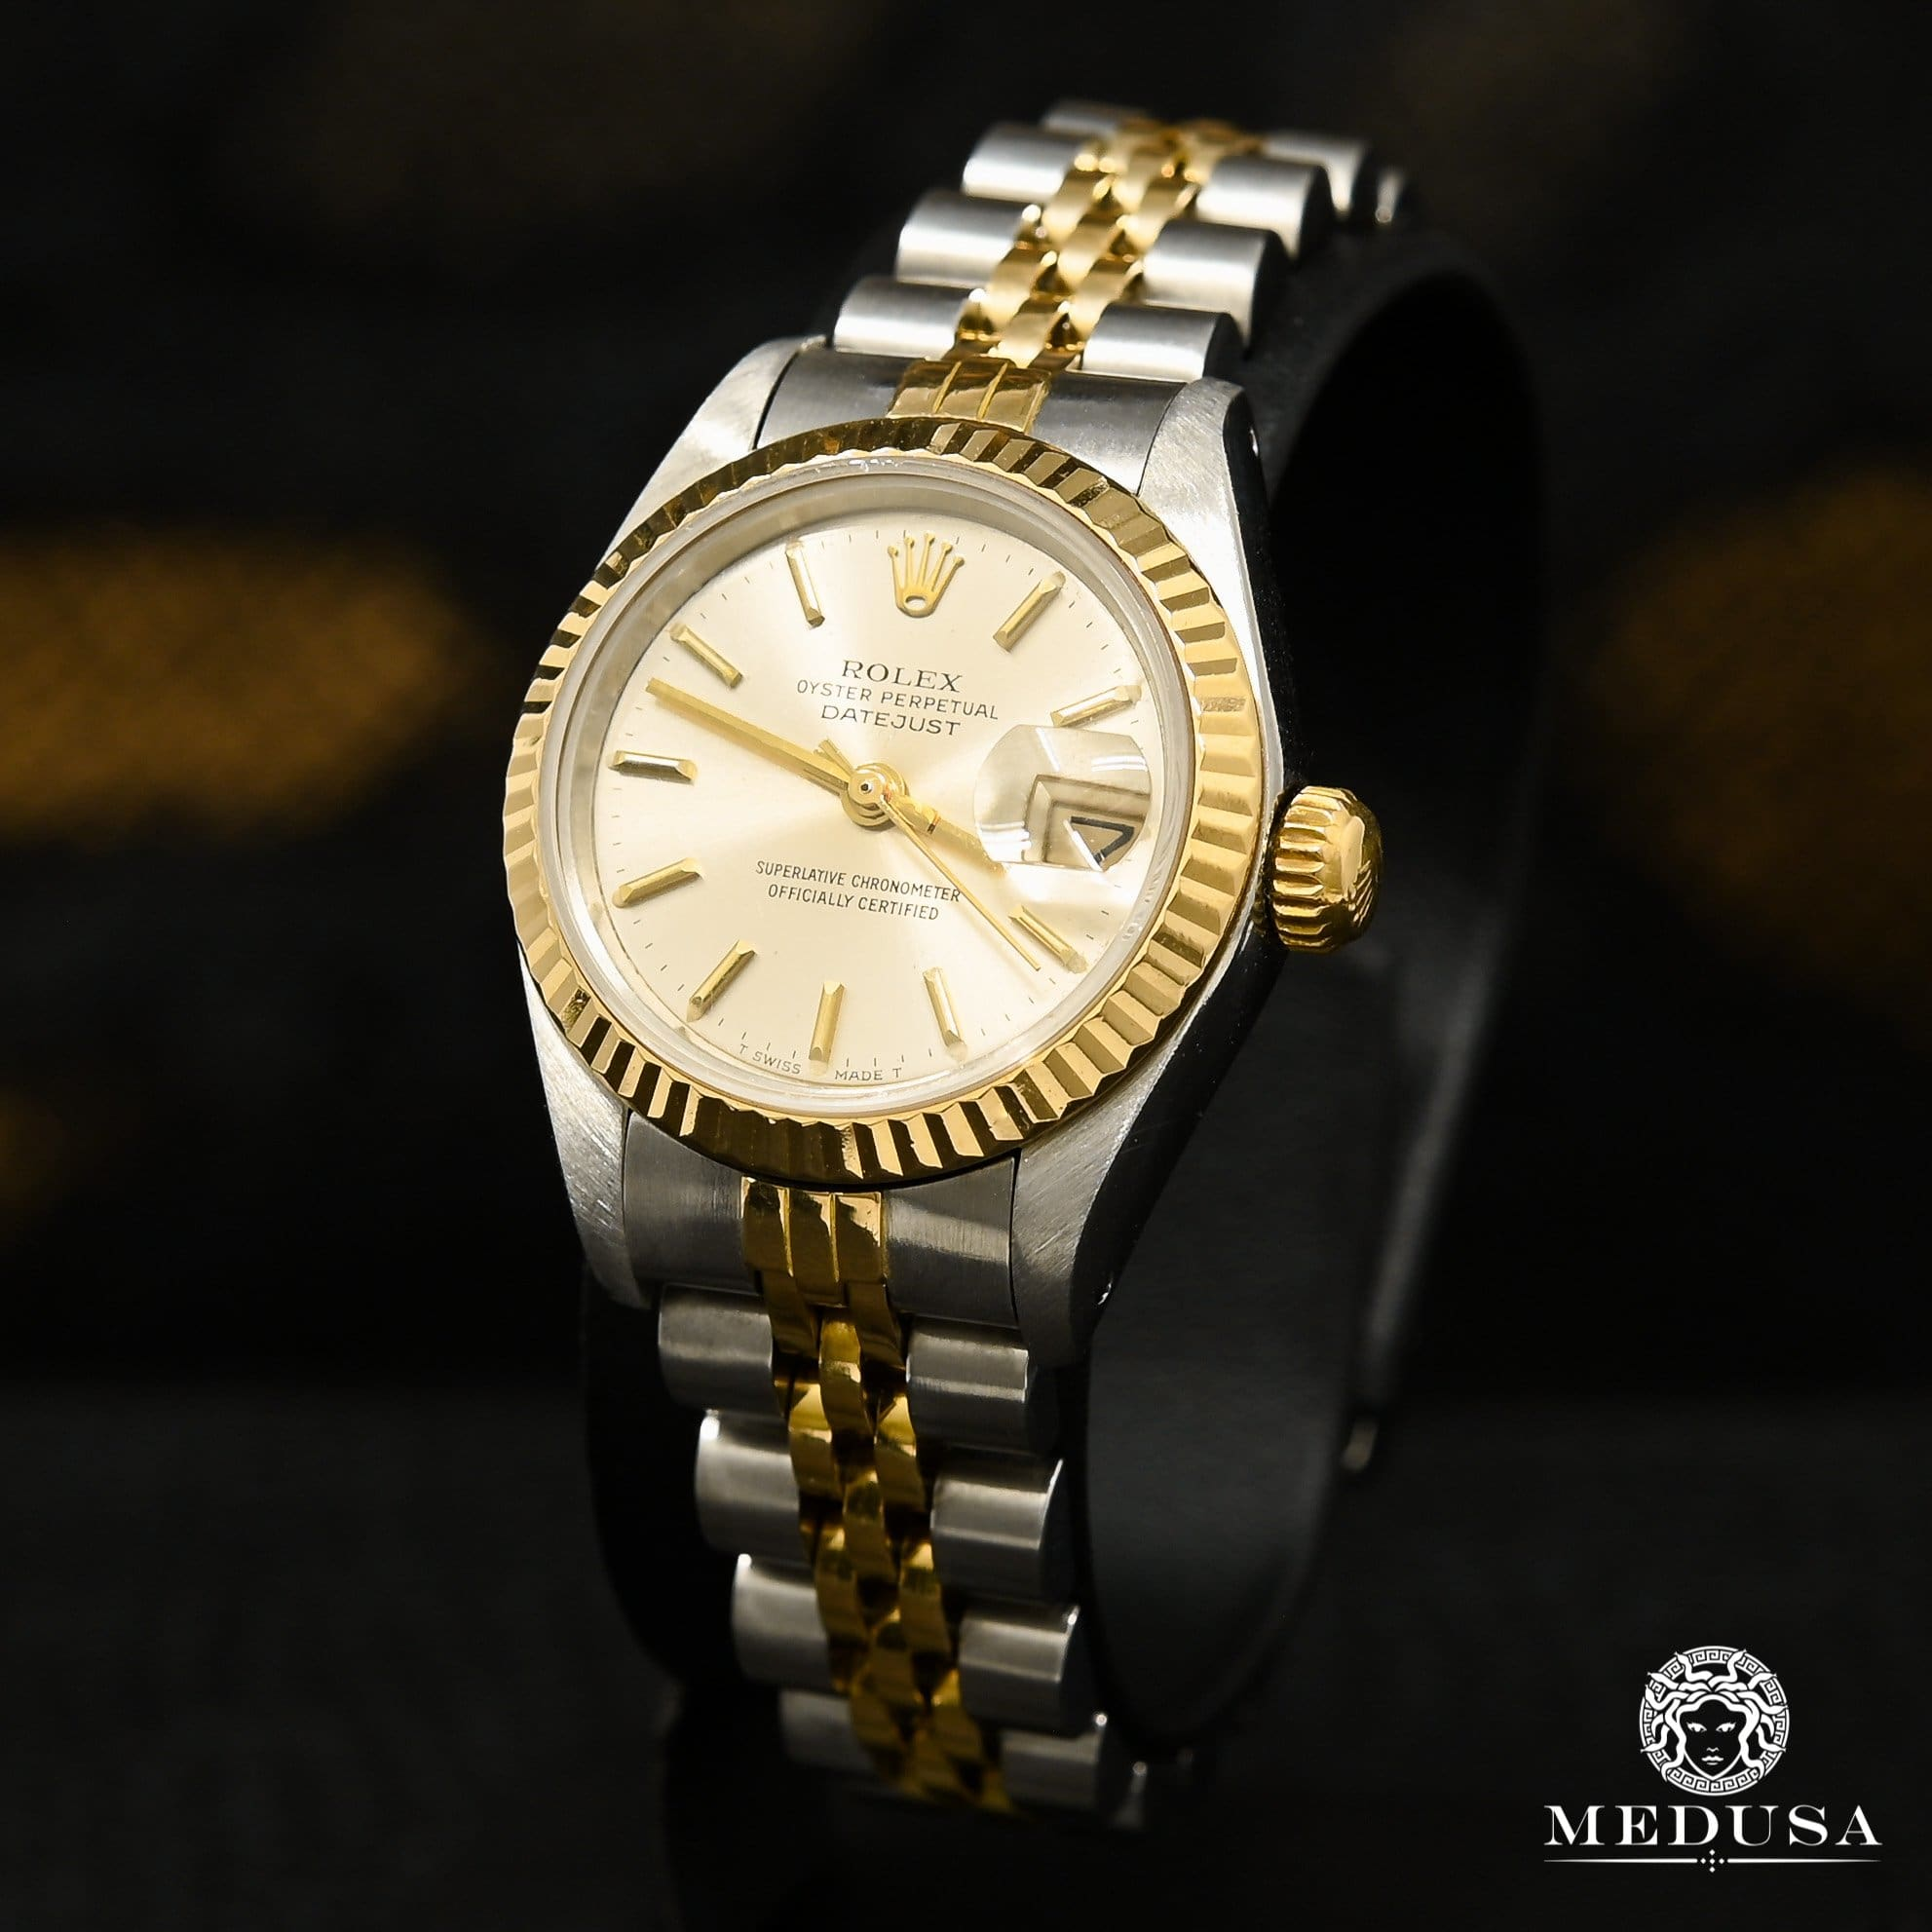 Rolex watch Rolex Women's Watch Datejust 26mm - Silver Gold 2 Tons